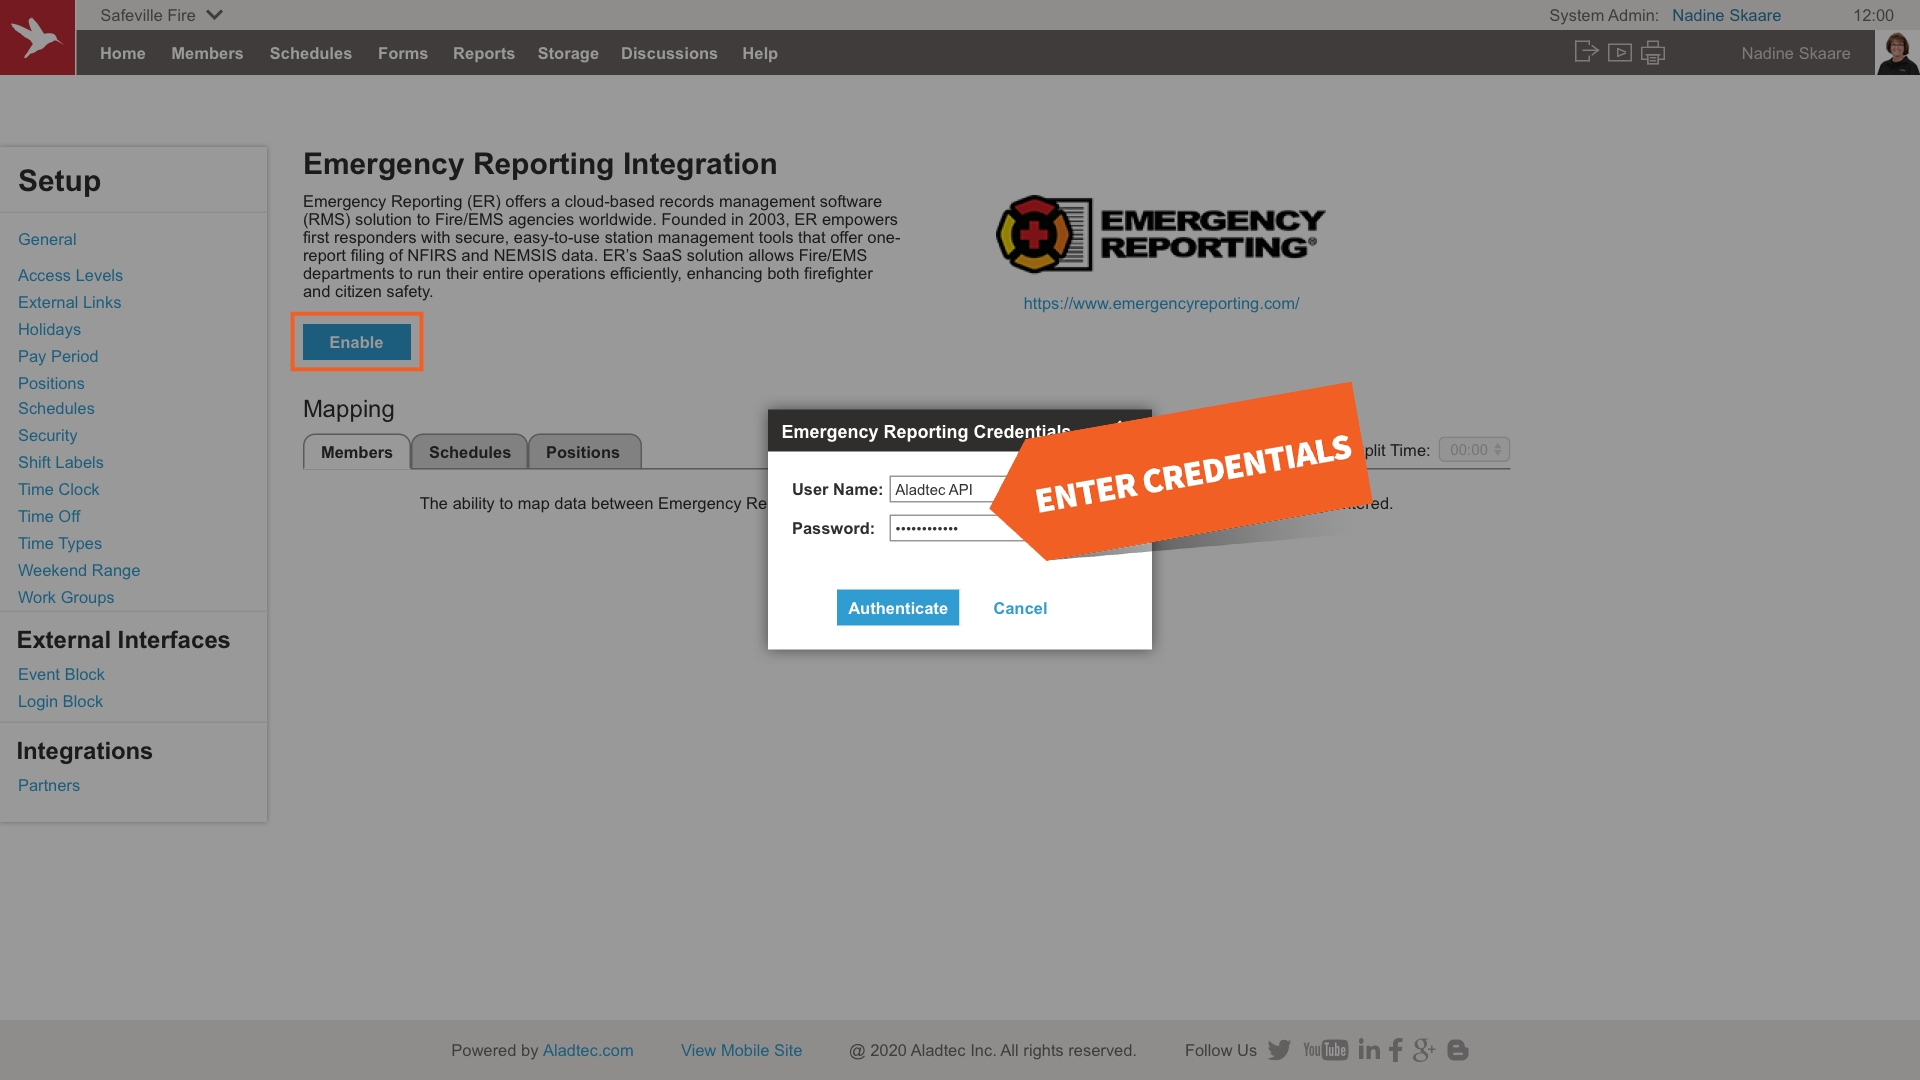 Aladtec Integrates With Emergency Reporting - Aladtec